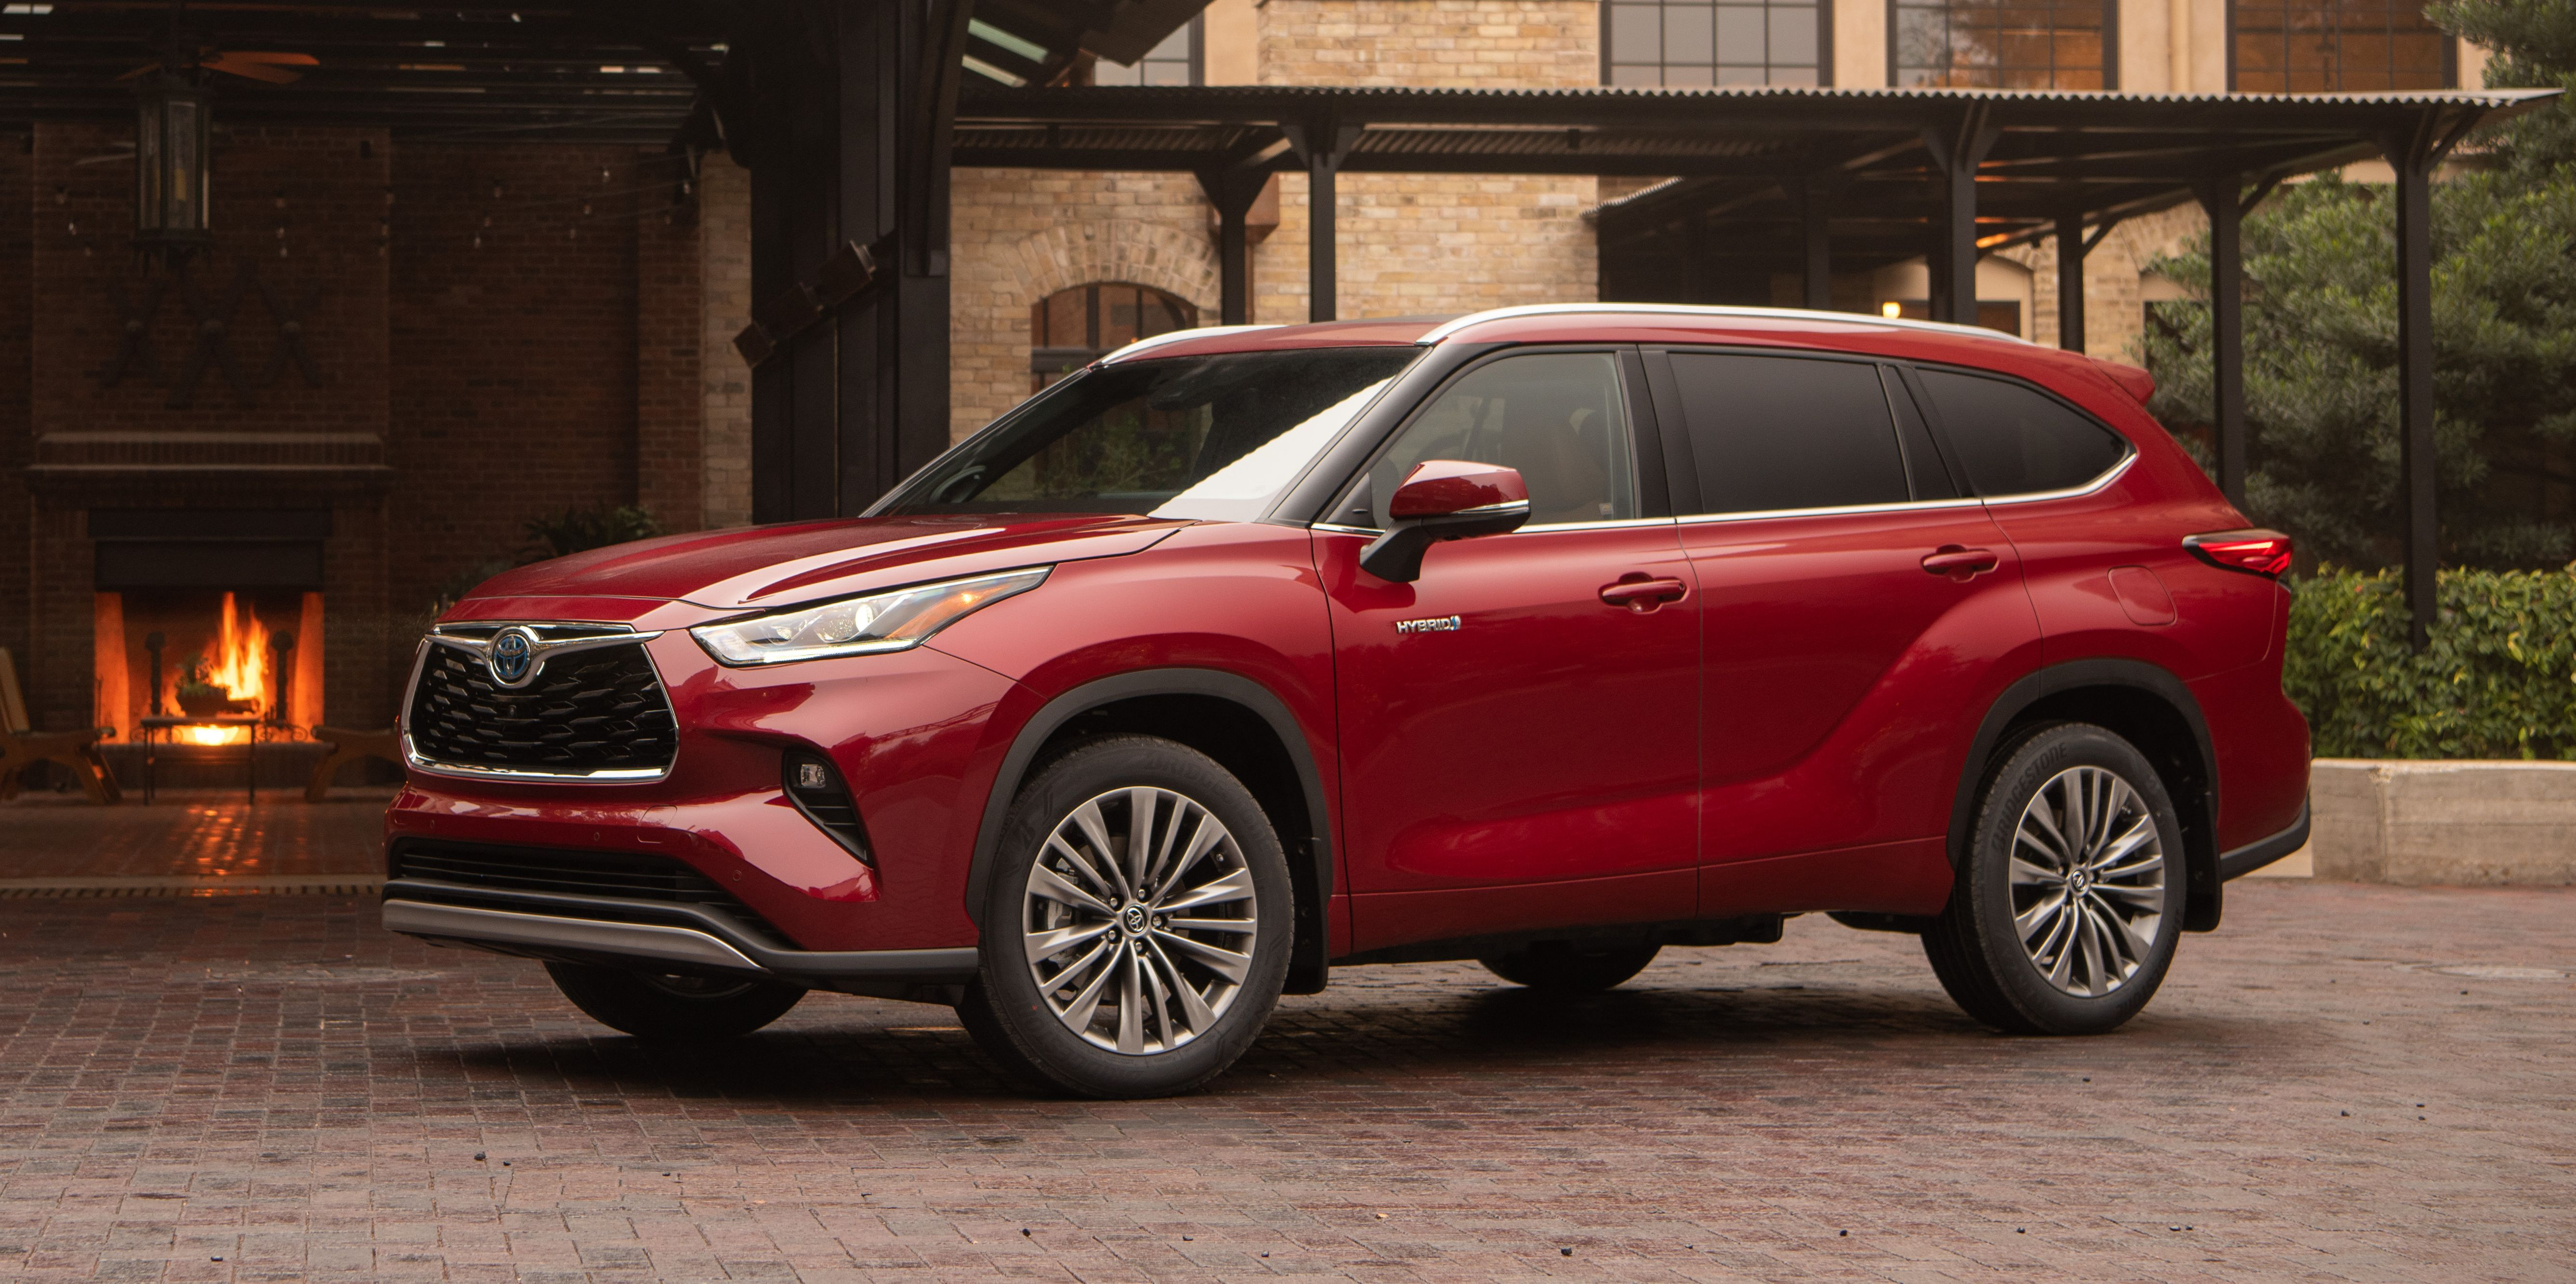 The Redesigned 2020 Toyota Highlander Three Row Suv Has A Starting Price Of 35 720 For The Base L Model Toyota Highlander Hybrid Car Toyota Highlander Hybrid